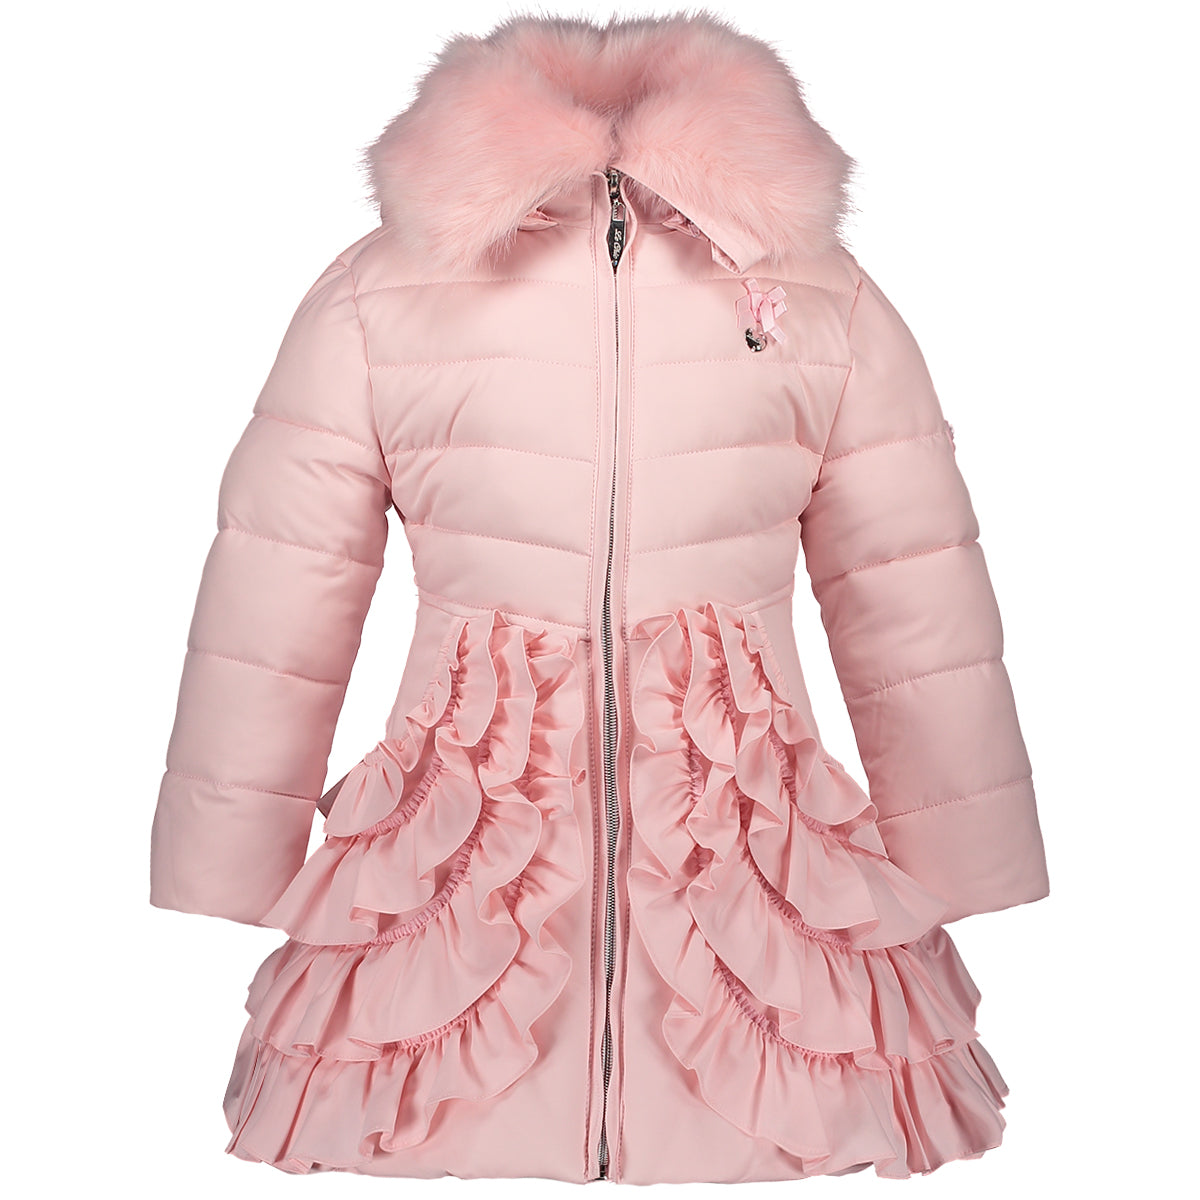 03c37c30d AW18 Le Chic Girls Pink Ruffle Hooded Coat 1-10 Years – Liquorice Kids